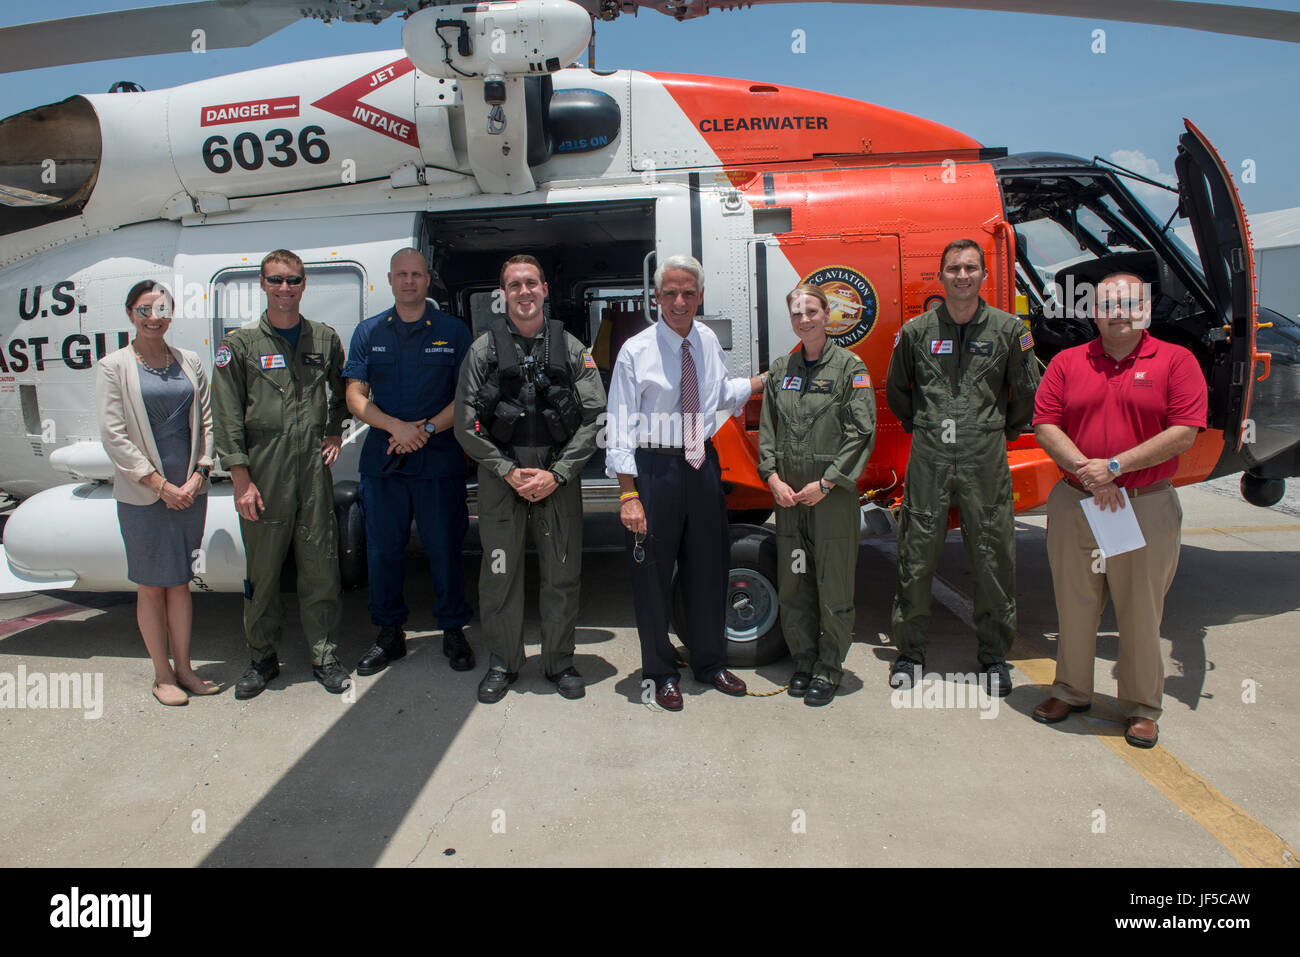 Congressman Charlie Crist, U.S. Representative for Florida's 13th District, center, meets with Air Station Clearwater - Stock Image